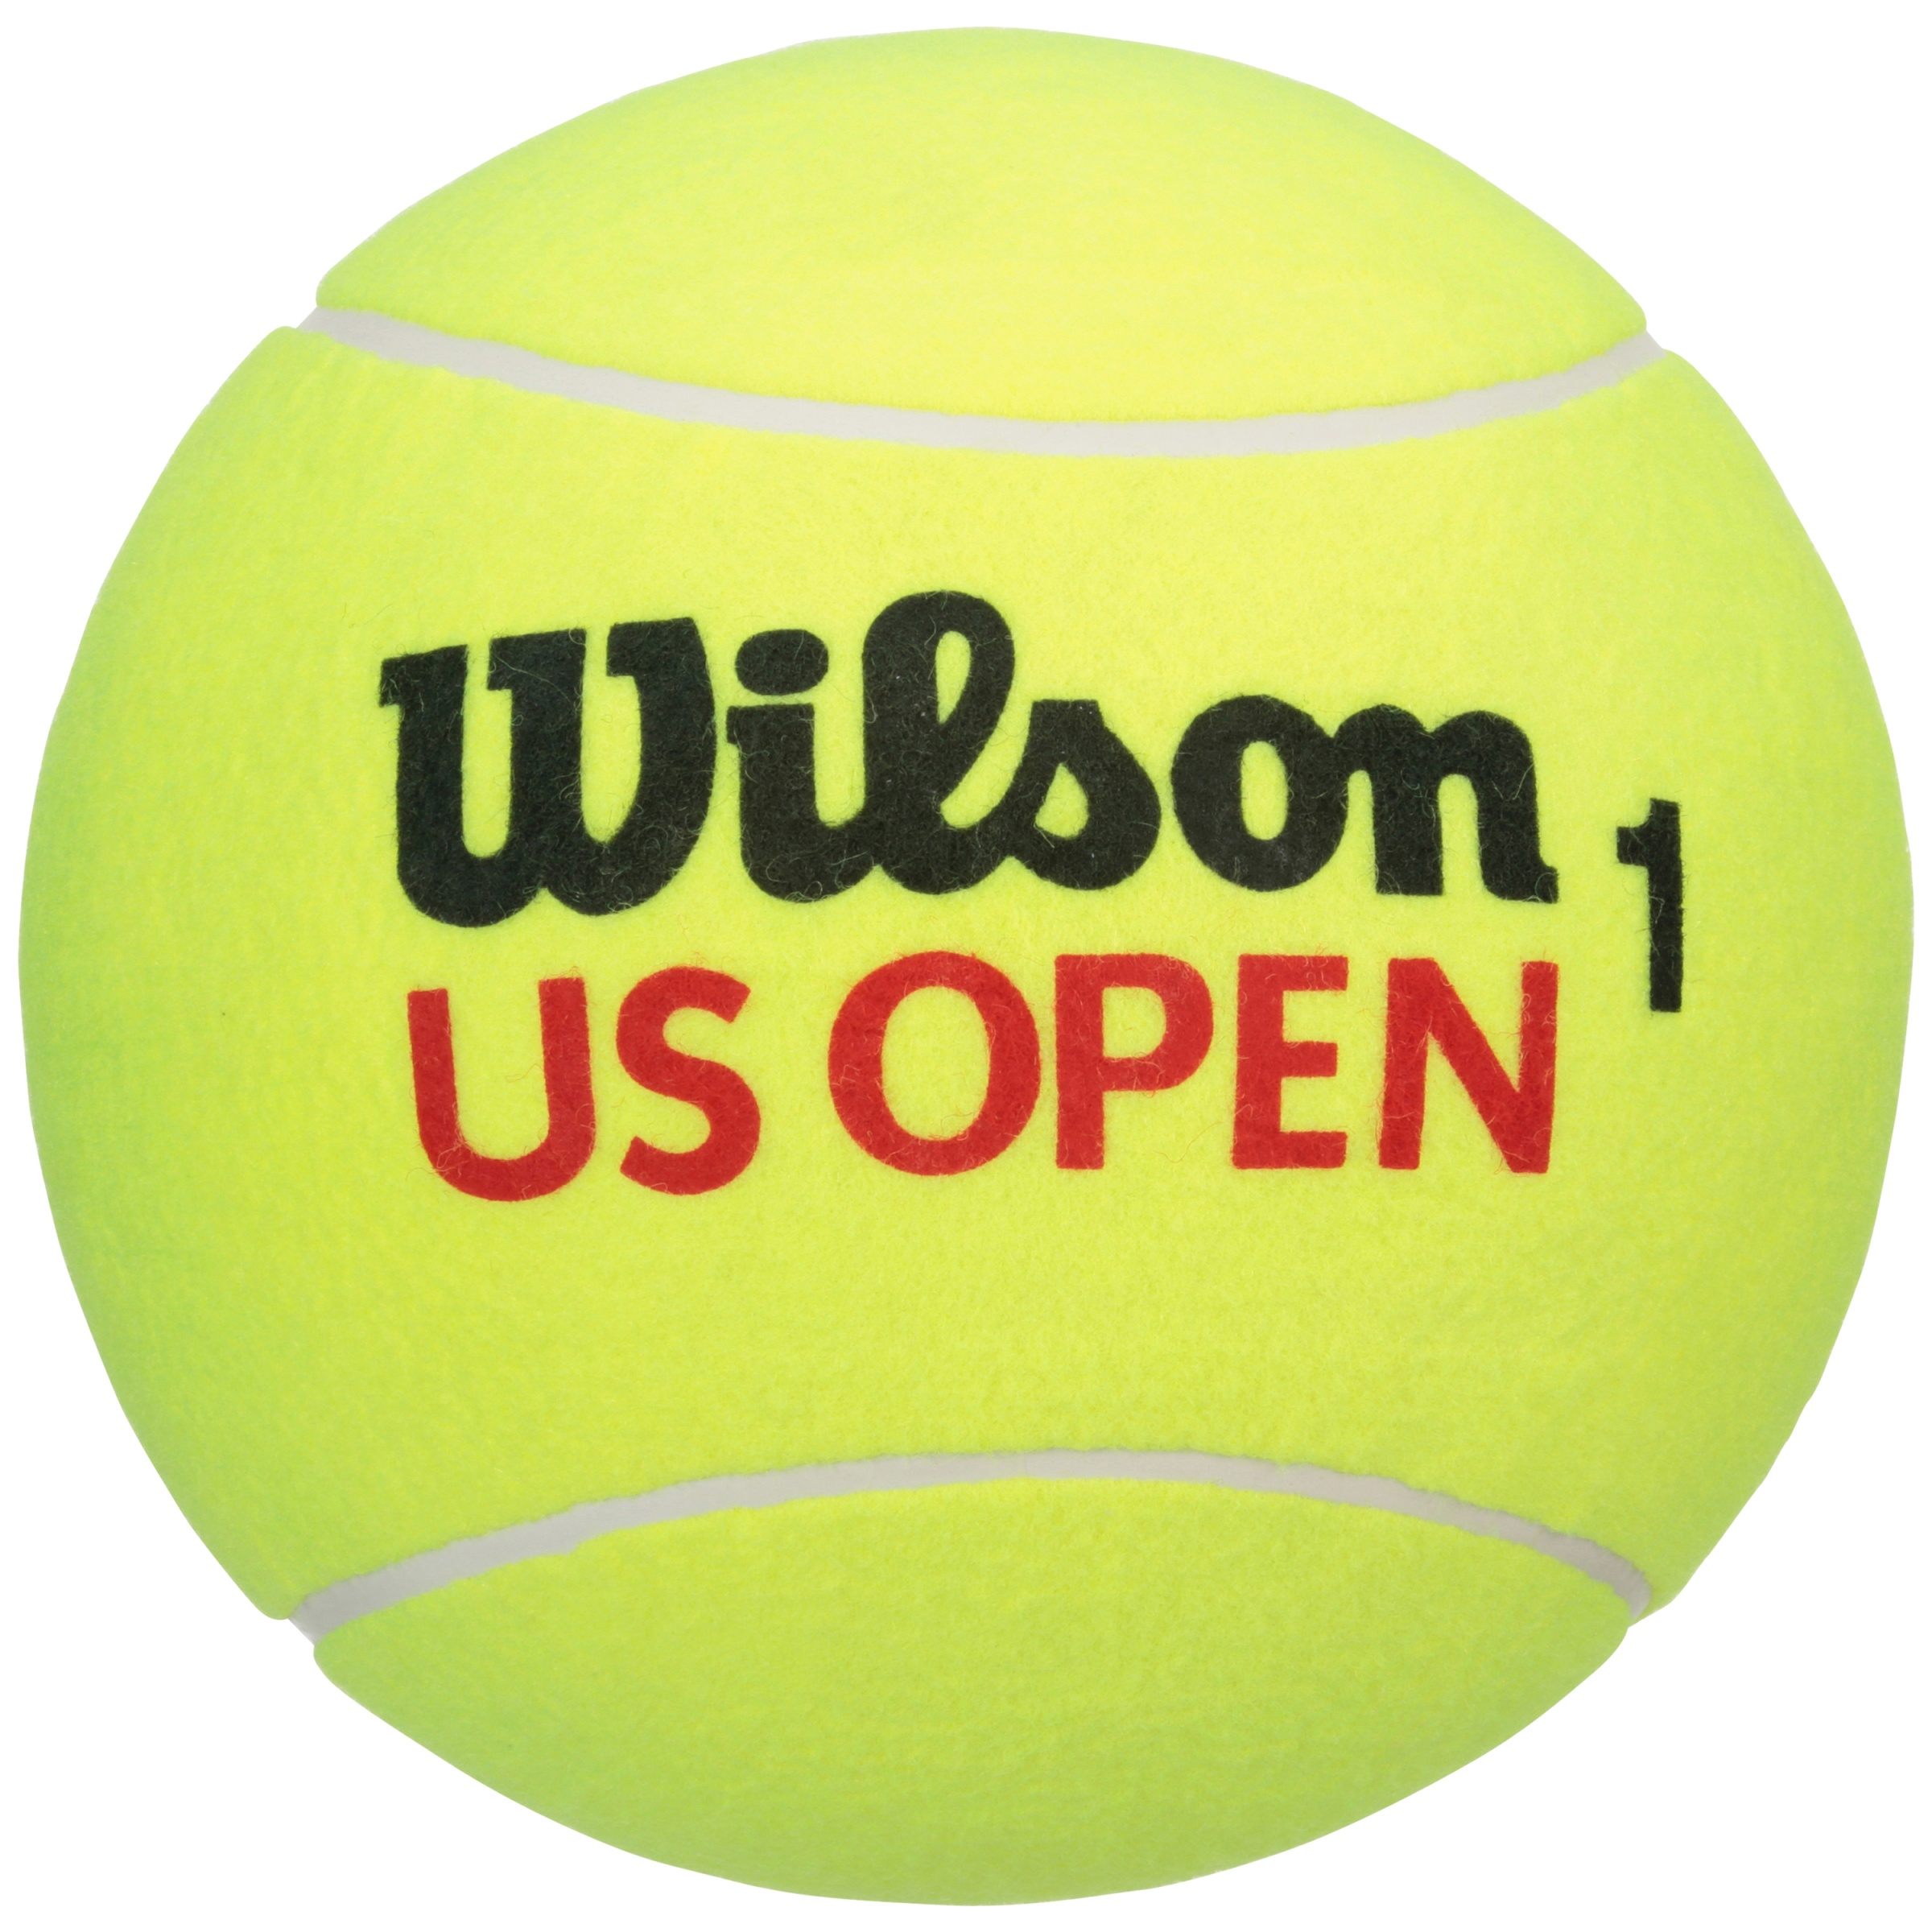 Image result for a US open tennis ball